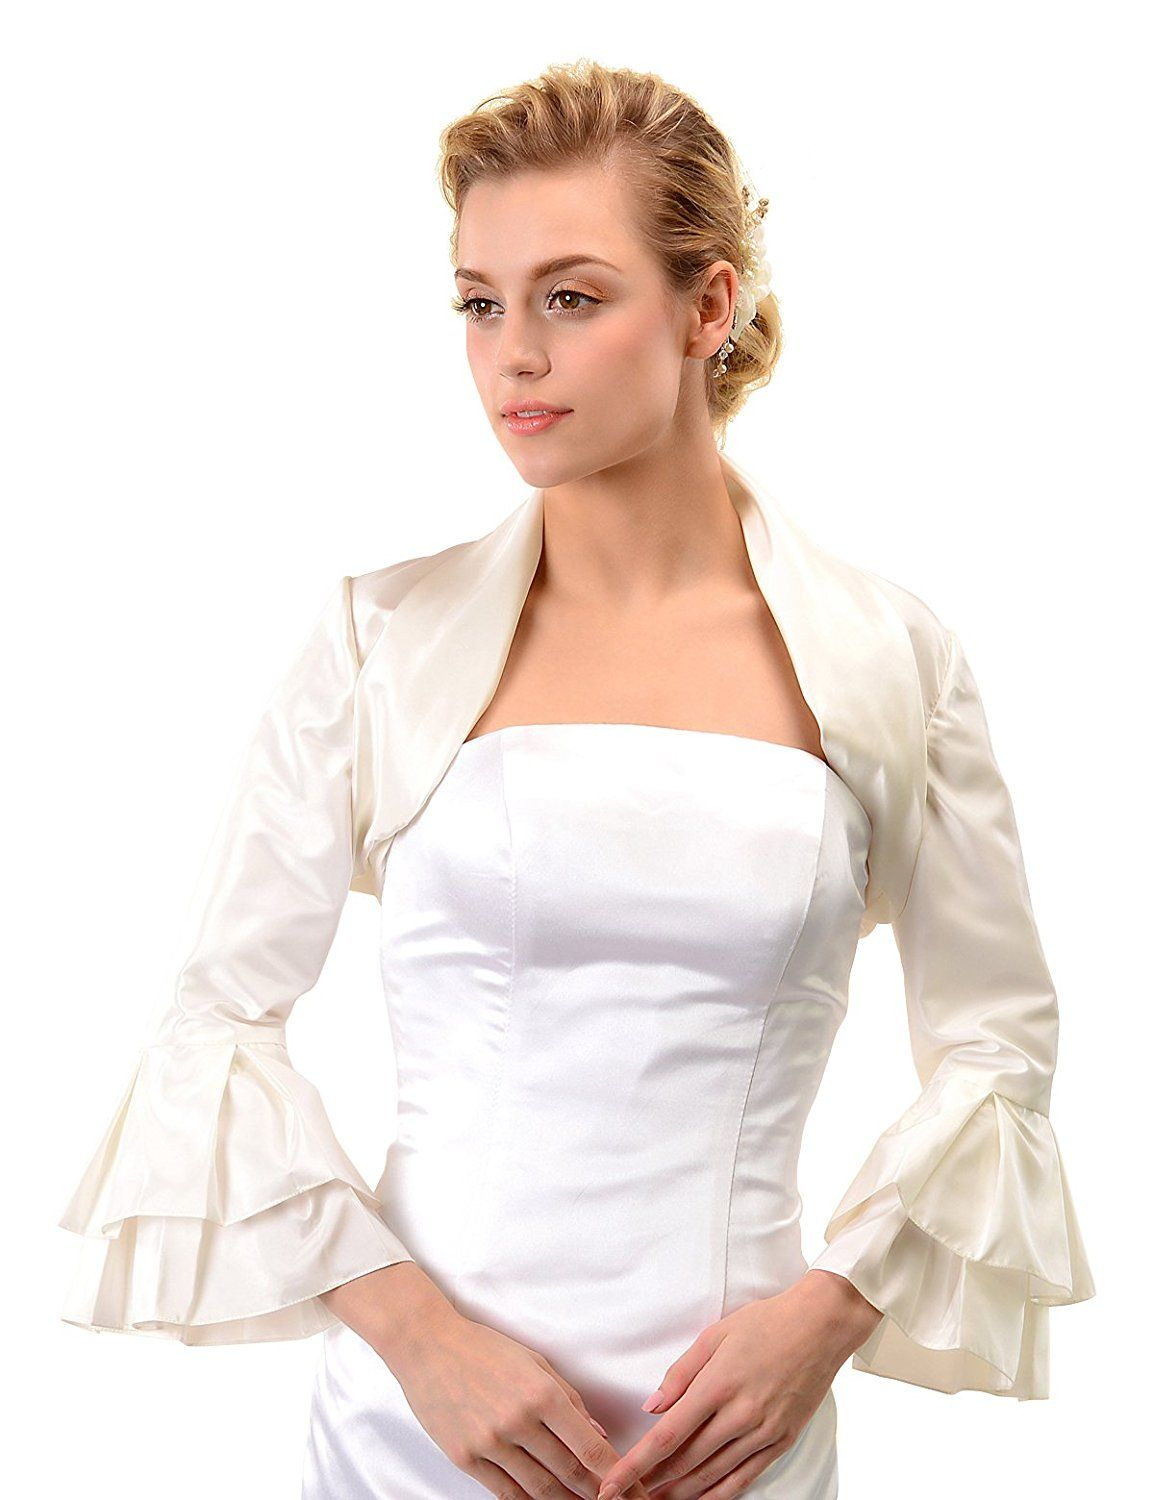 fc0764b171e Topwedding Ivory Satin Wedding Bolero Jacket Bridal Dress Shrug w Trumpet  Sleeve